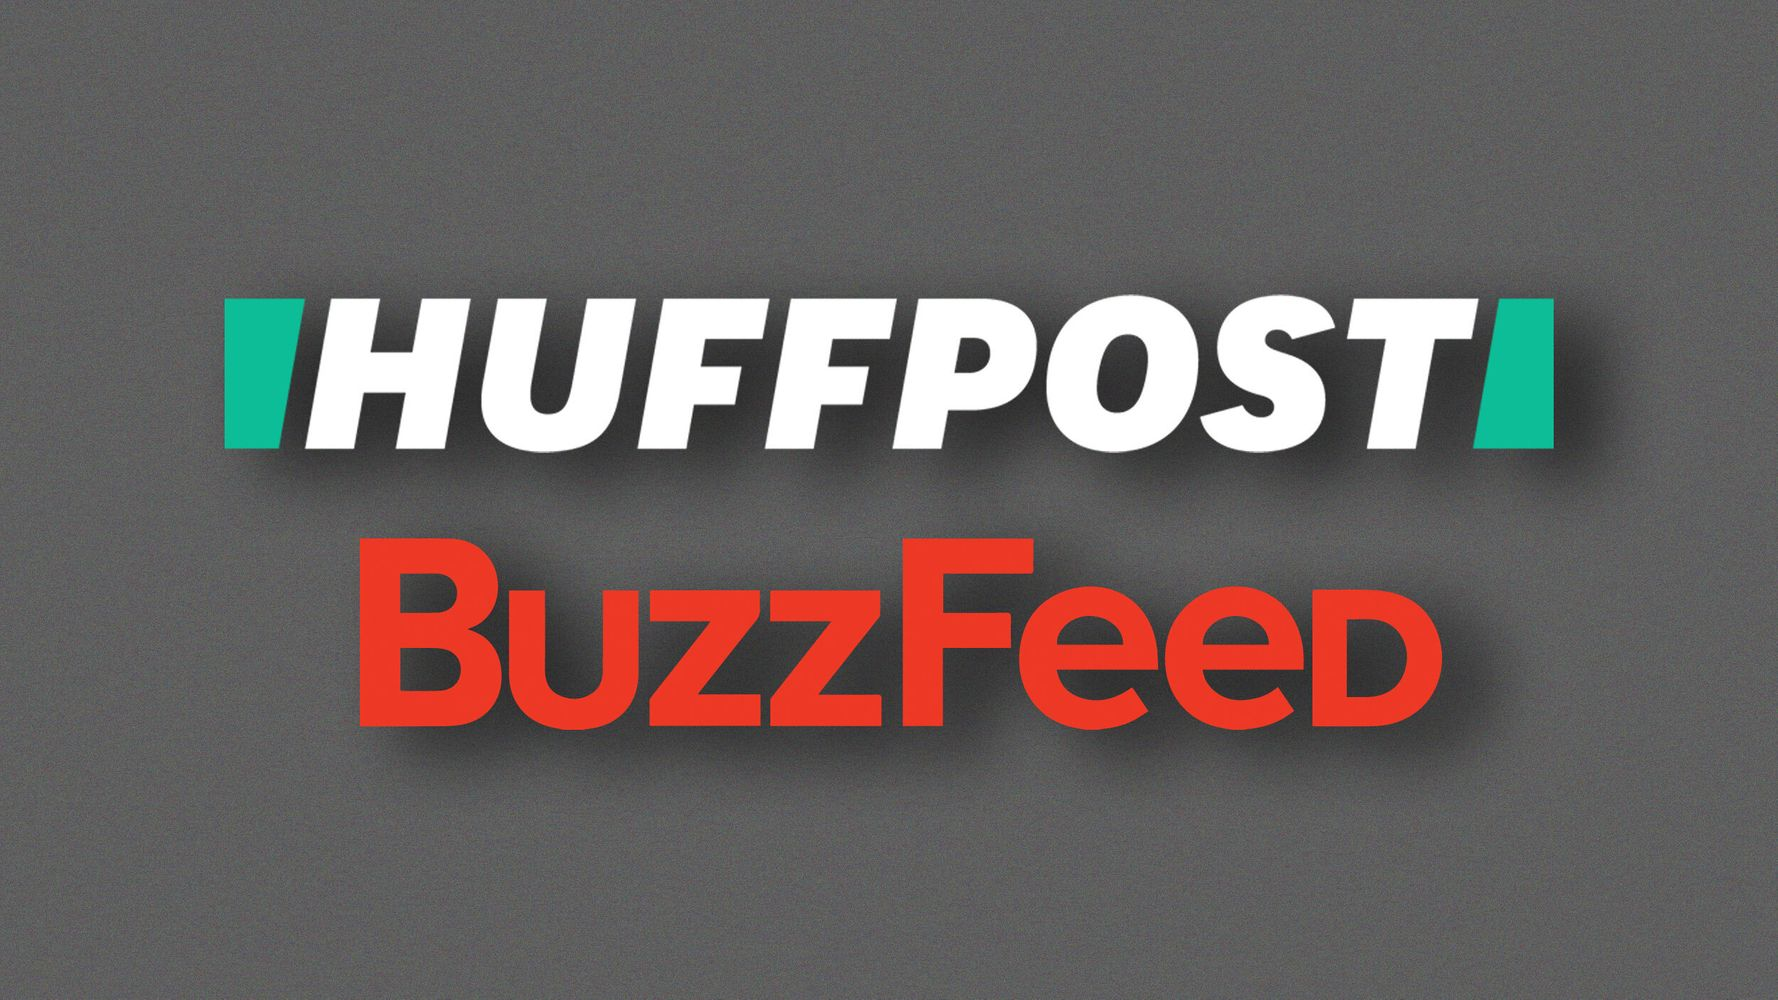 BuzzFeed To Acquire HuffPost In Multi-Year Partnership With Verizon Media